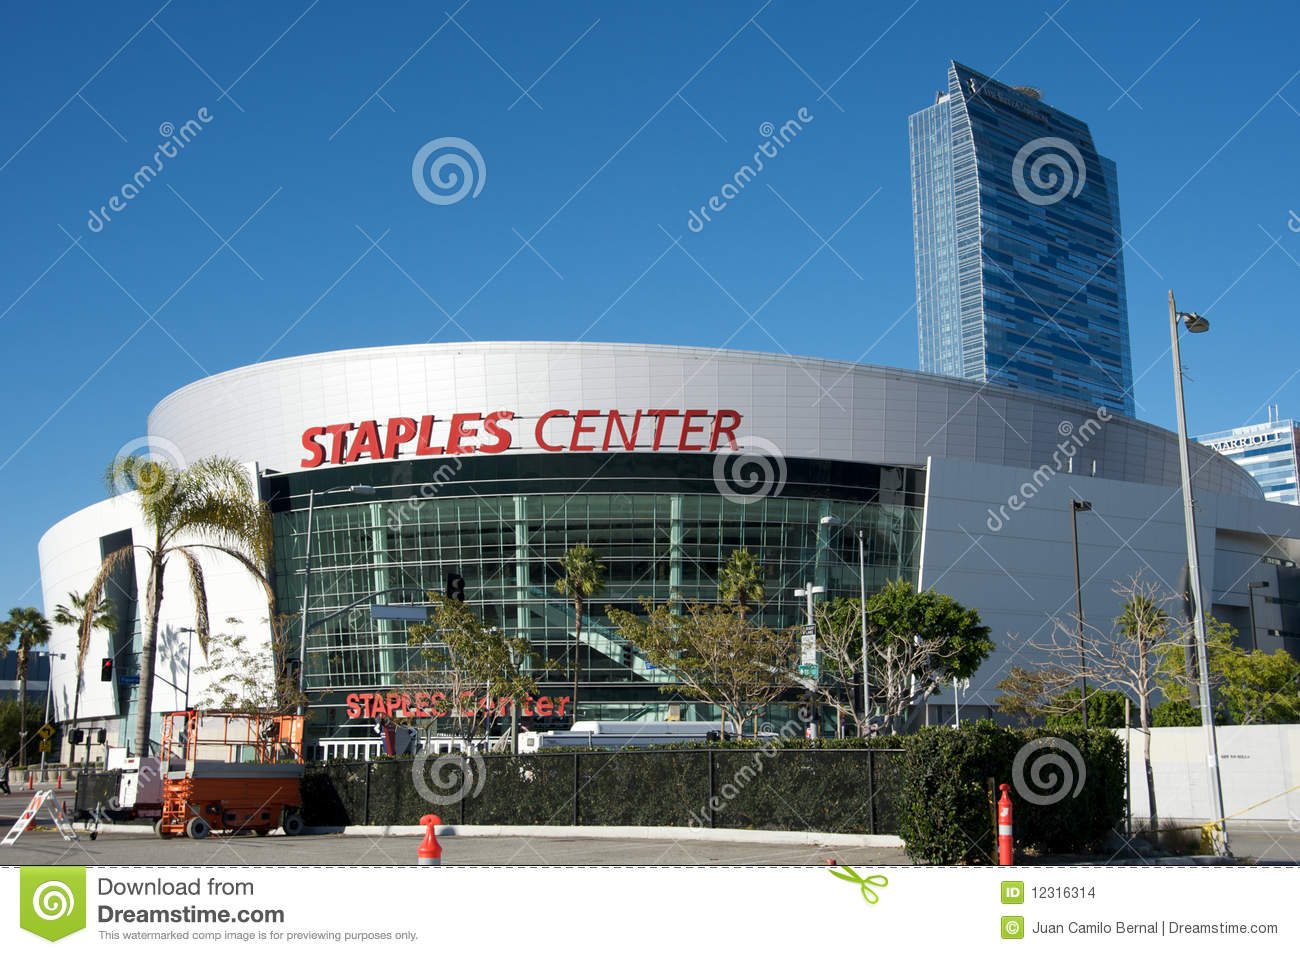 Staples center in los angeles editorial stock image for Staples bernal